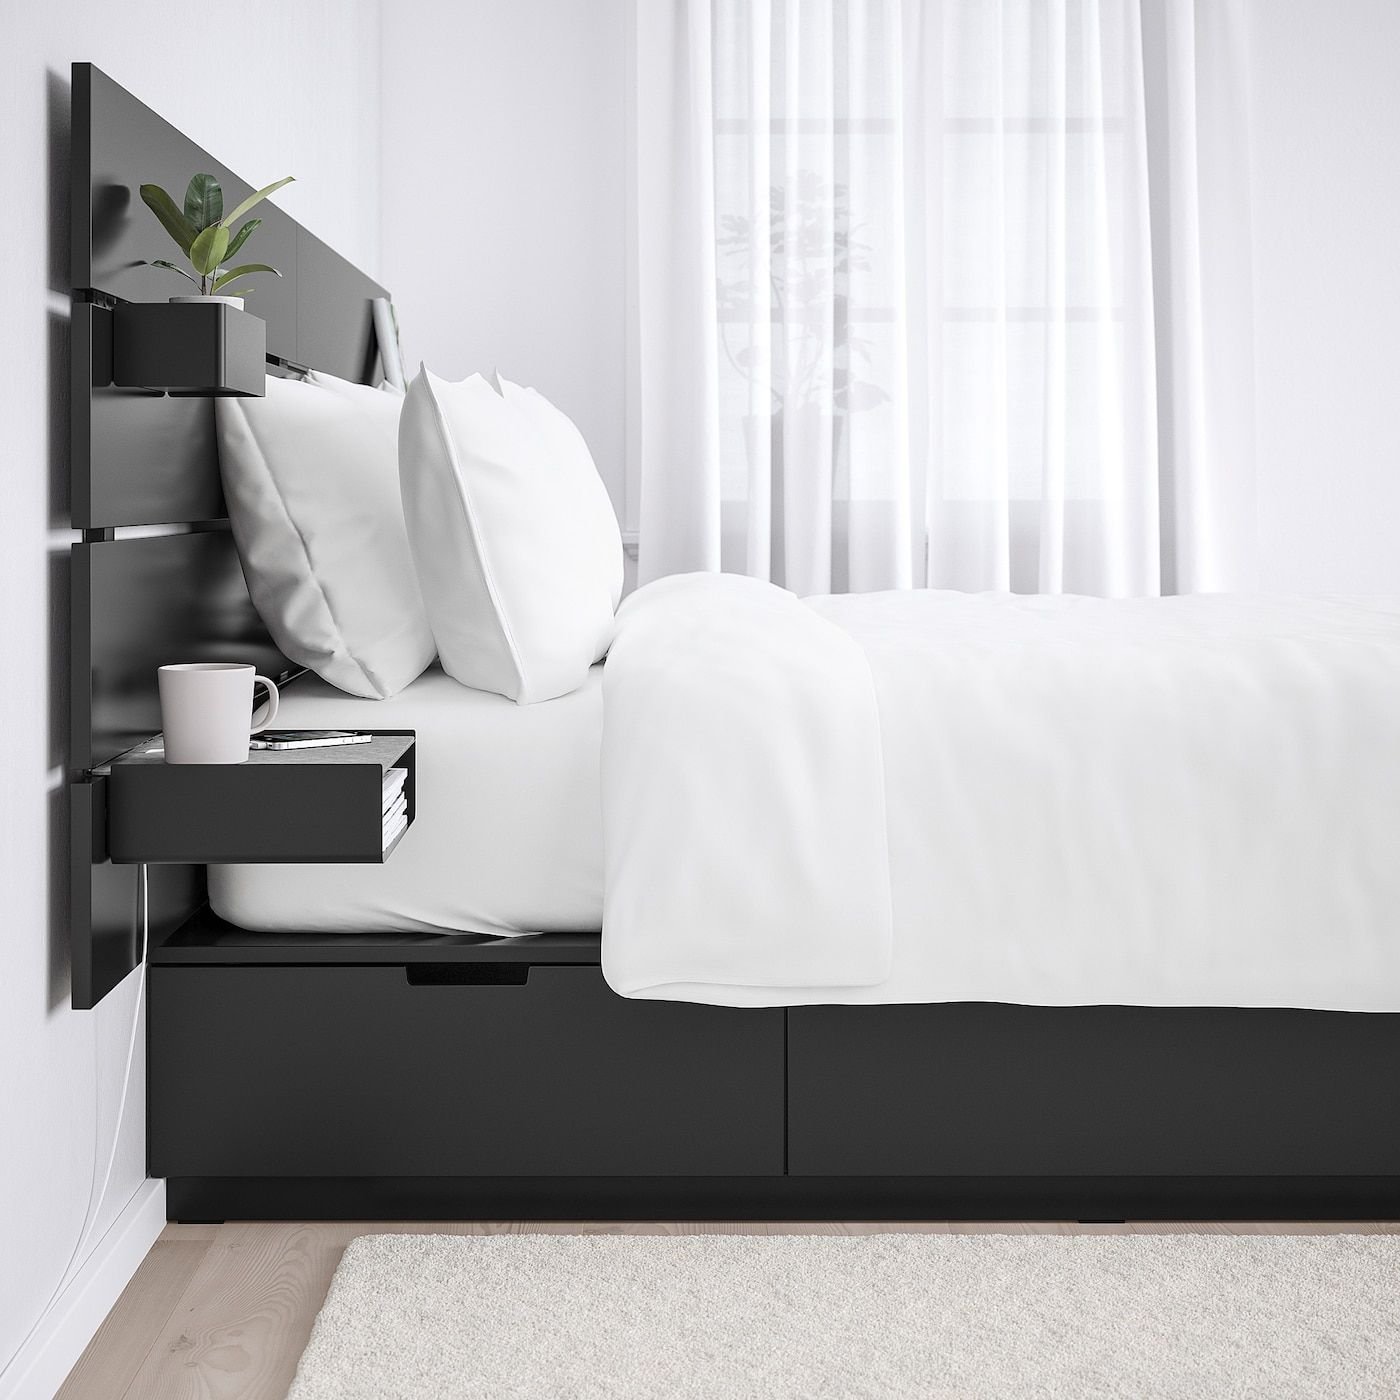 Nordli Bed With Headboard And Storage Anthracite Queen Ikea Headboards For Beds Headboard Storage Bed Frame With Storage,What Goes Well With Blueberry Muffins